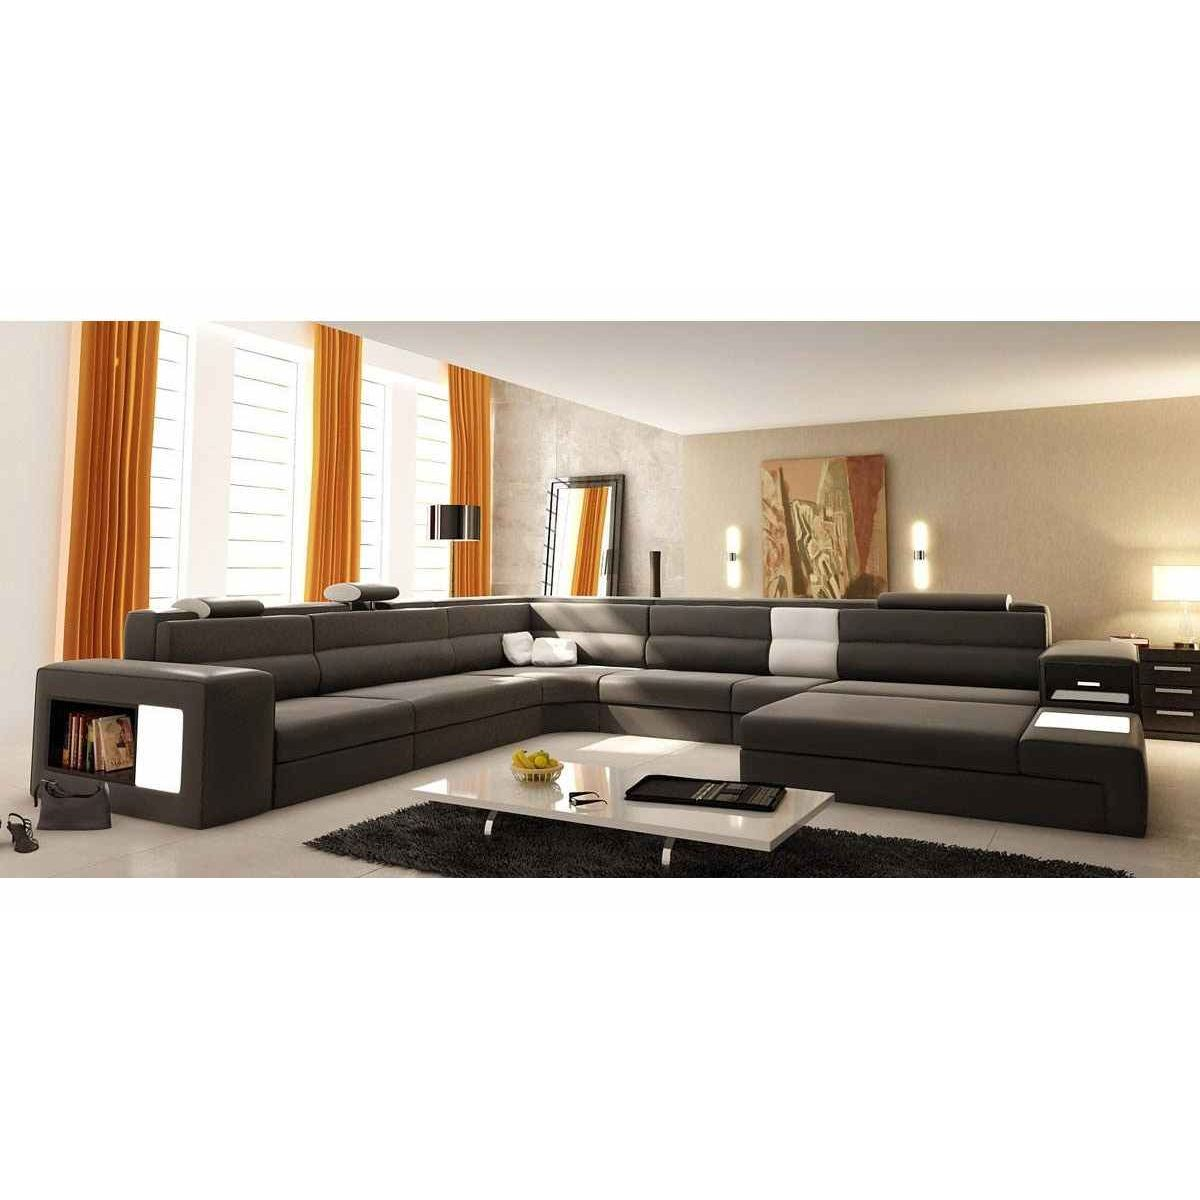 deco in paris canape panoramique cuir gris angle droit. Black Bedroom Furniture Sets. Home Design Ideas